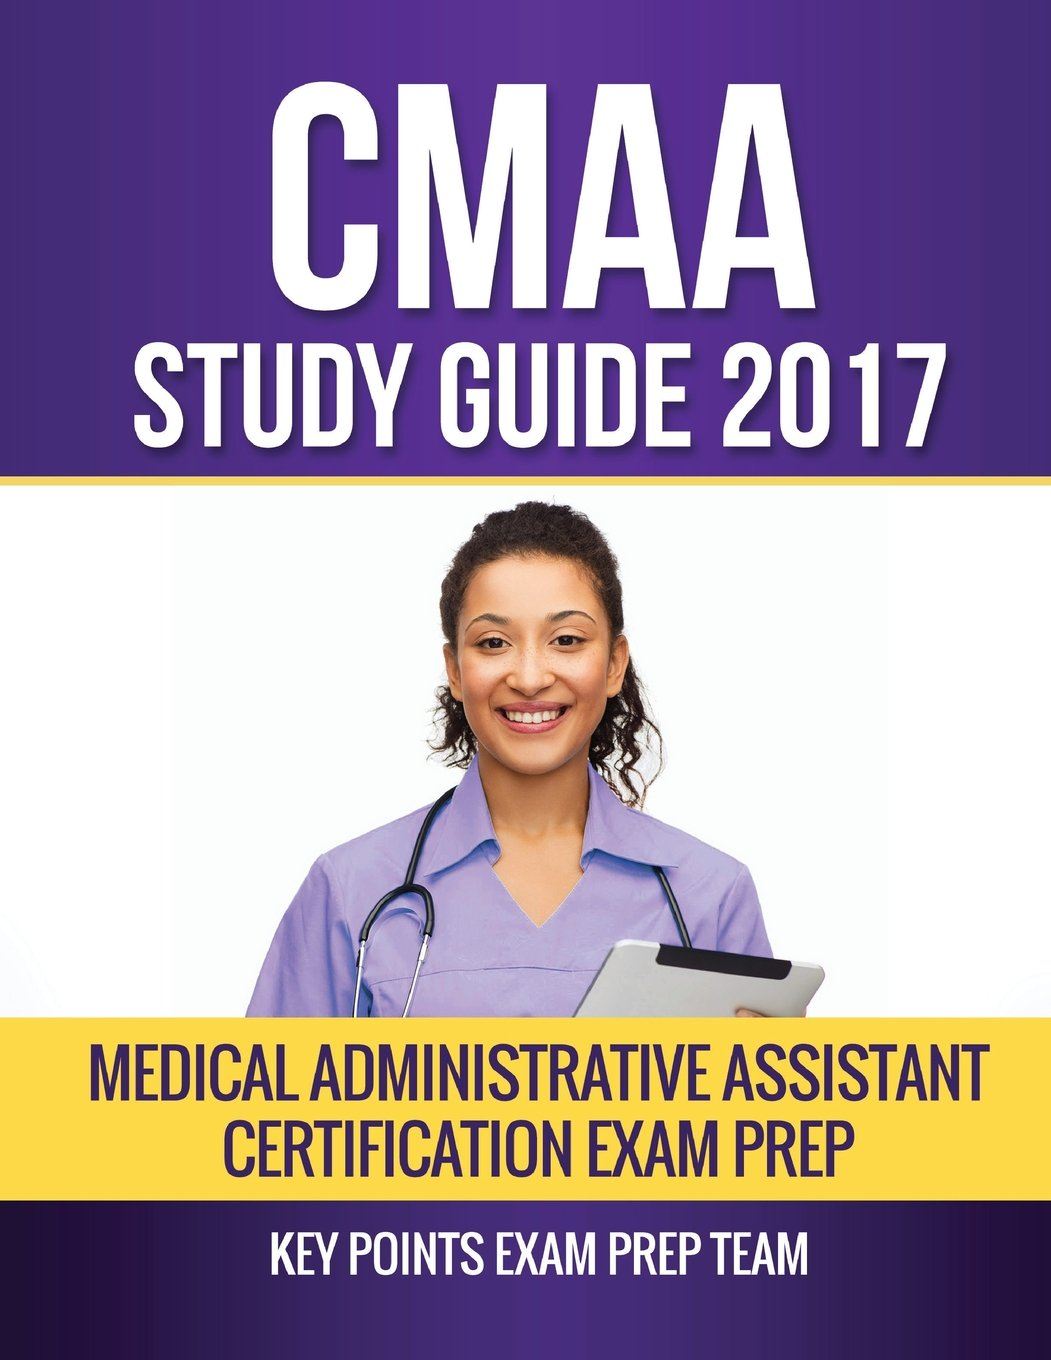 Cmaa Study Guide 2017 Medical Administrative Assistant